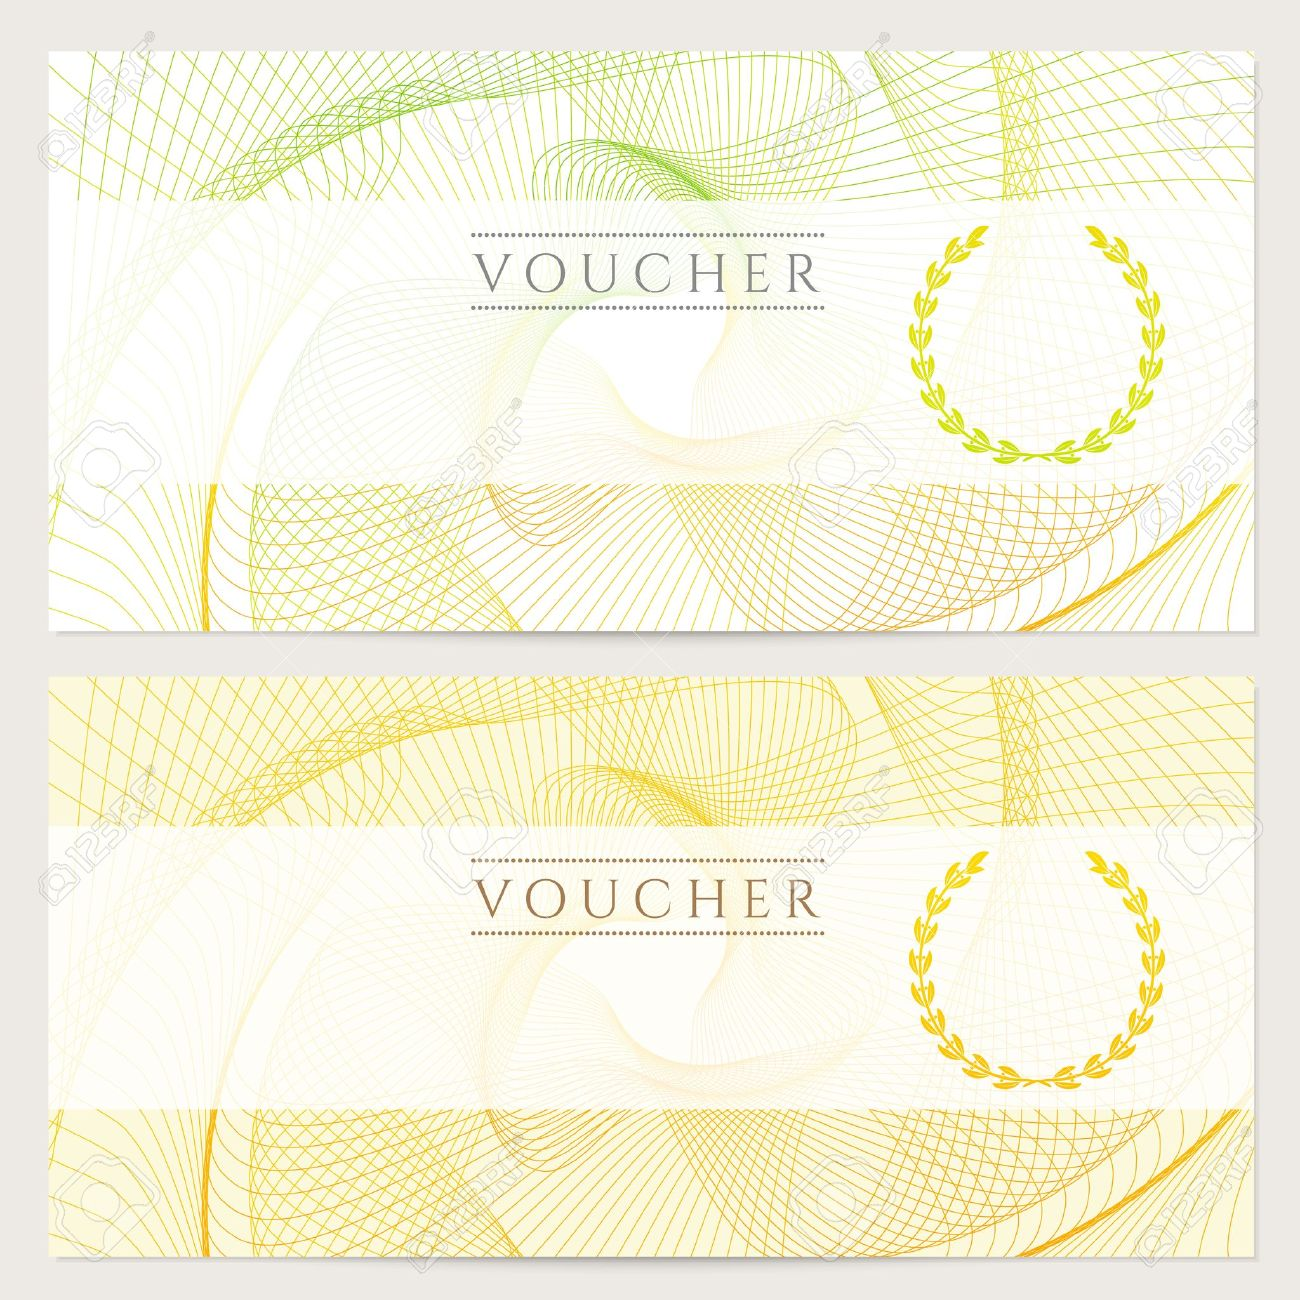 Gift Certificate, Voucher, Coupon Template With Colorful Rainbow Guilloche  Pattern Watermark Background For Banknote  Money Note Template